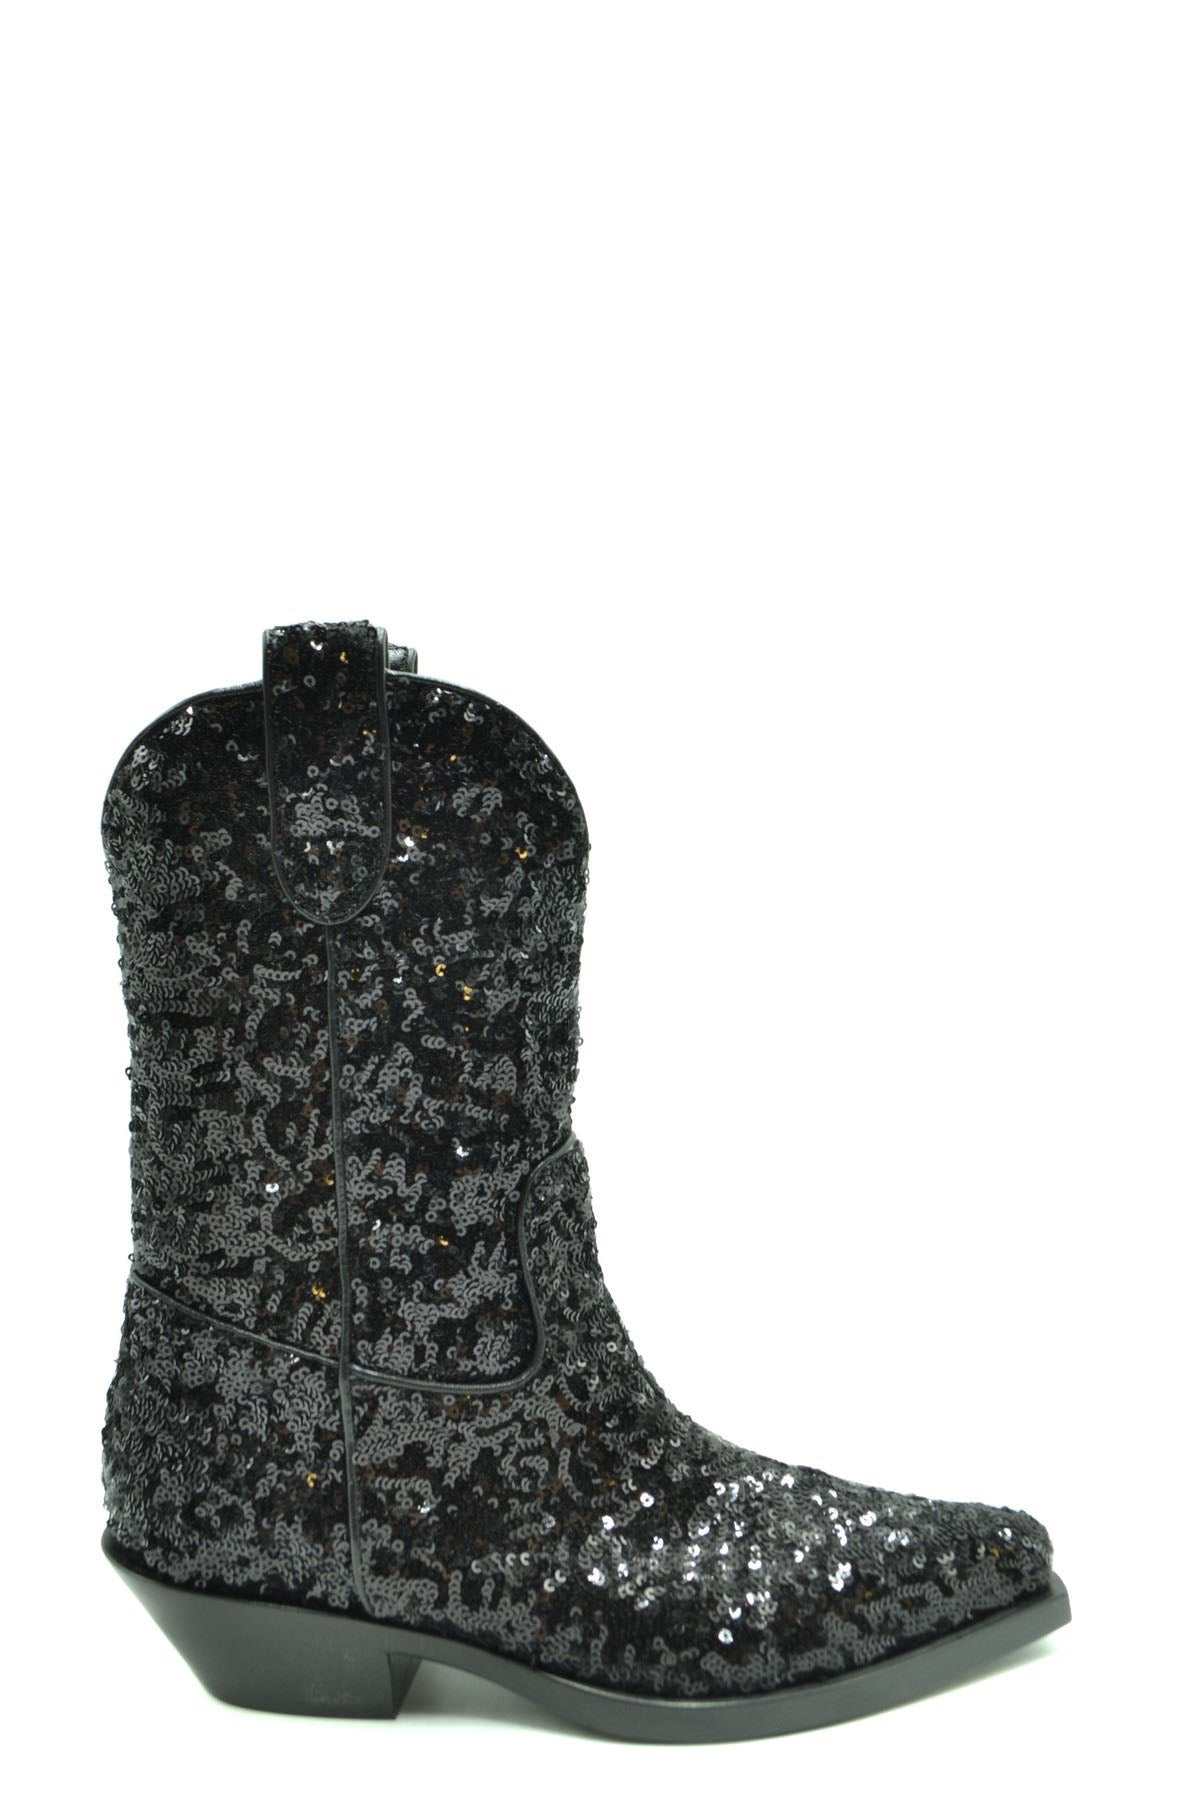 Shoes Dolce & Gabbana-Women's Fashion - Women's Shoes - Women's Boots-36-Product Details Terms: New With LabelMain Color: BlackType Of Accessory: BootsSeason: Fall / WinterMade In: ItalyGender: WomanSize: EuComposition: Leather 100%Year: 2020Manufacturer Part Number: Ct0454 Az277 80999-Keyomi-Sook